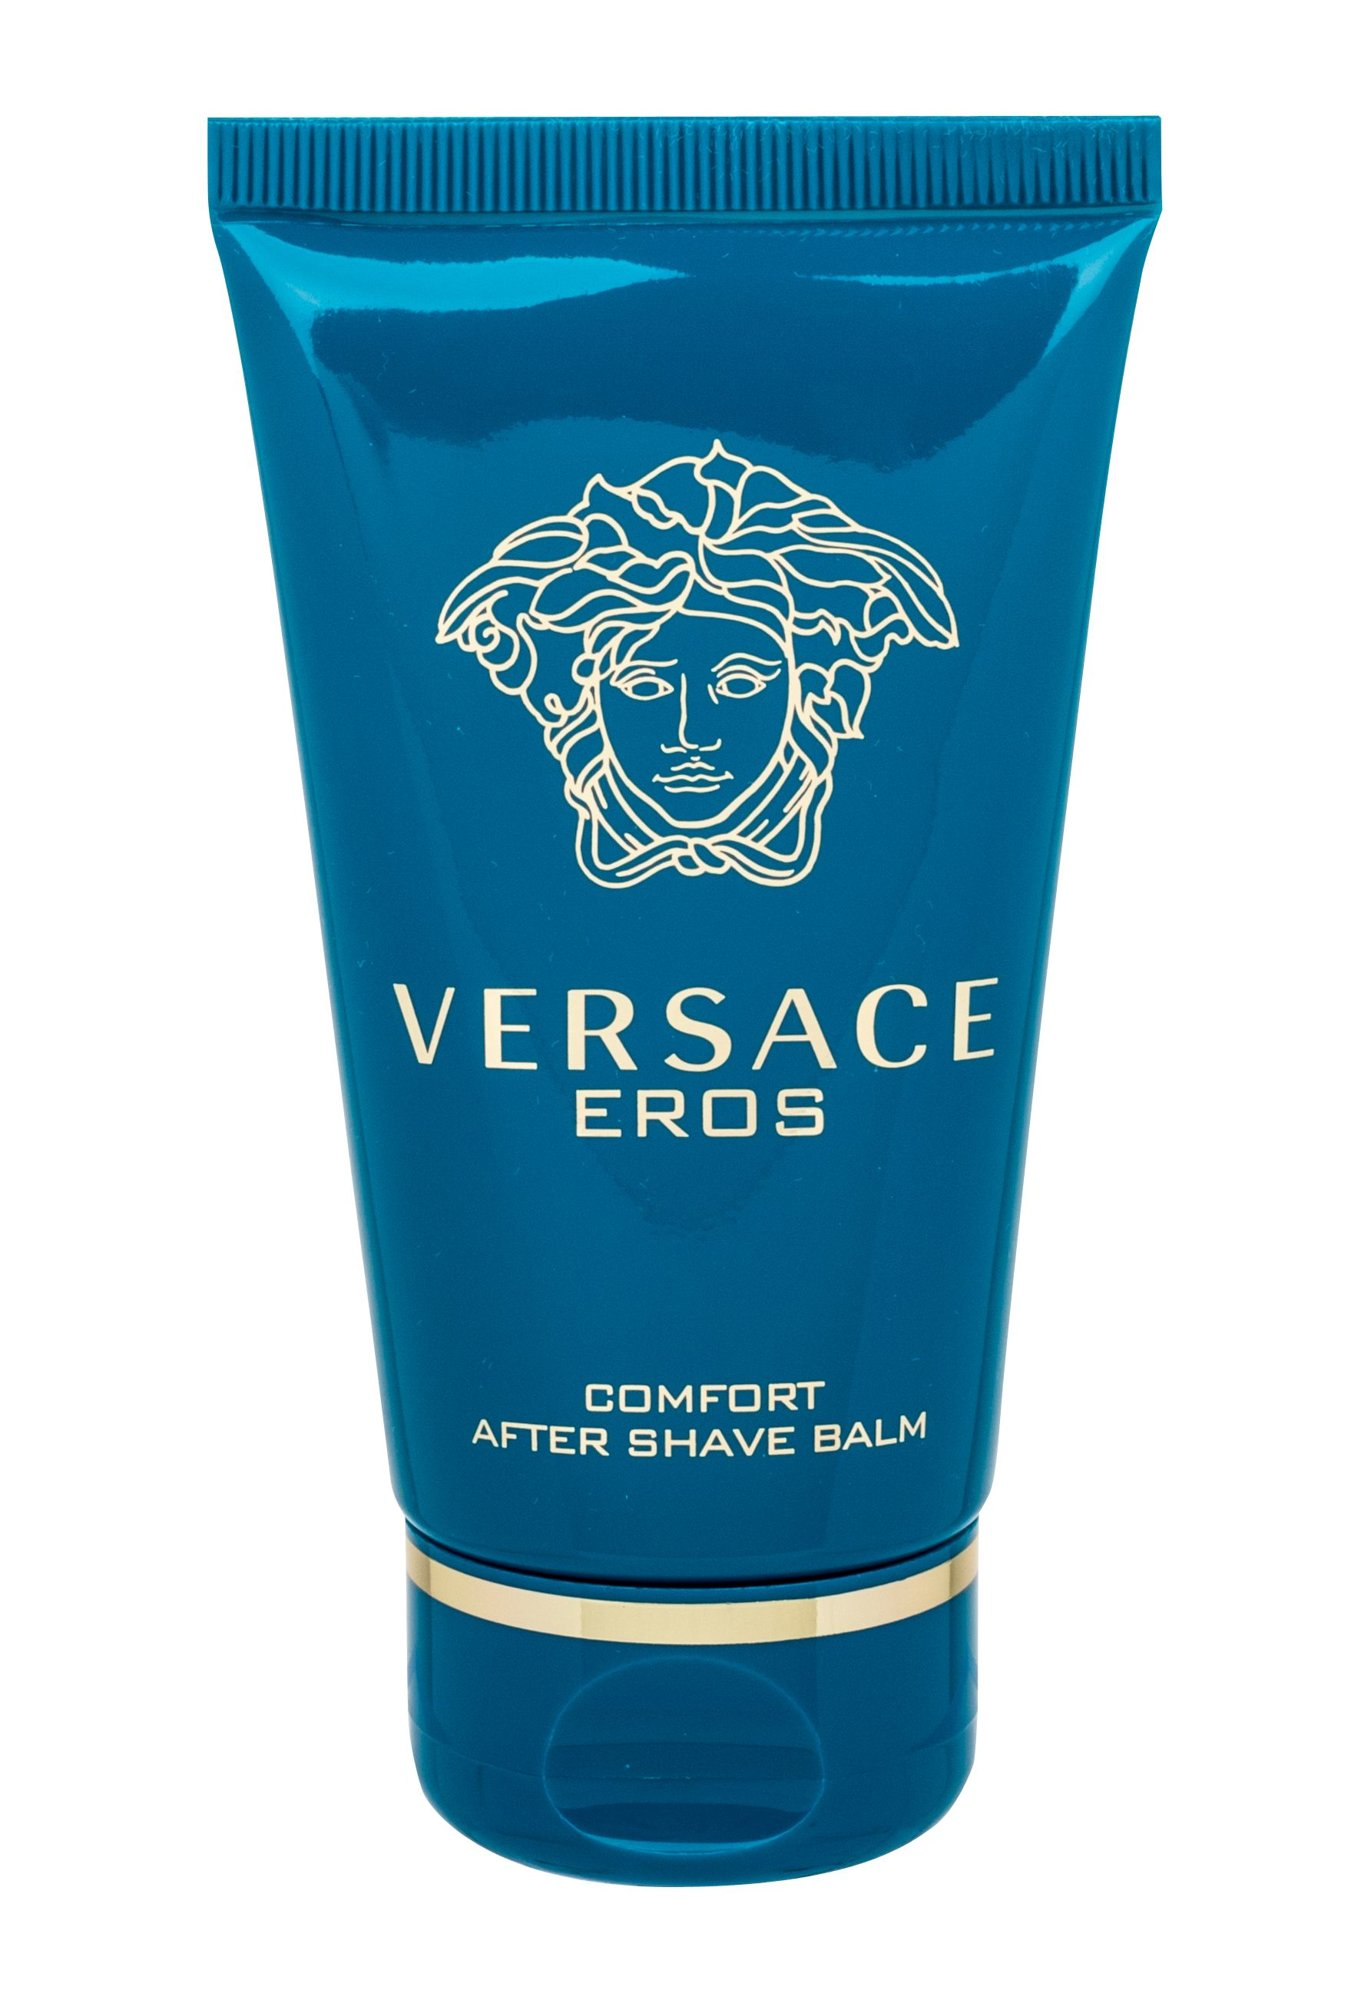 Versace Eros After shave balm 25ml